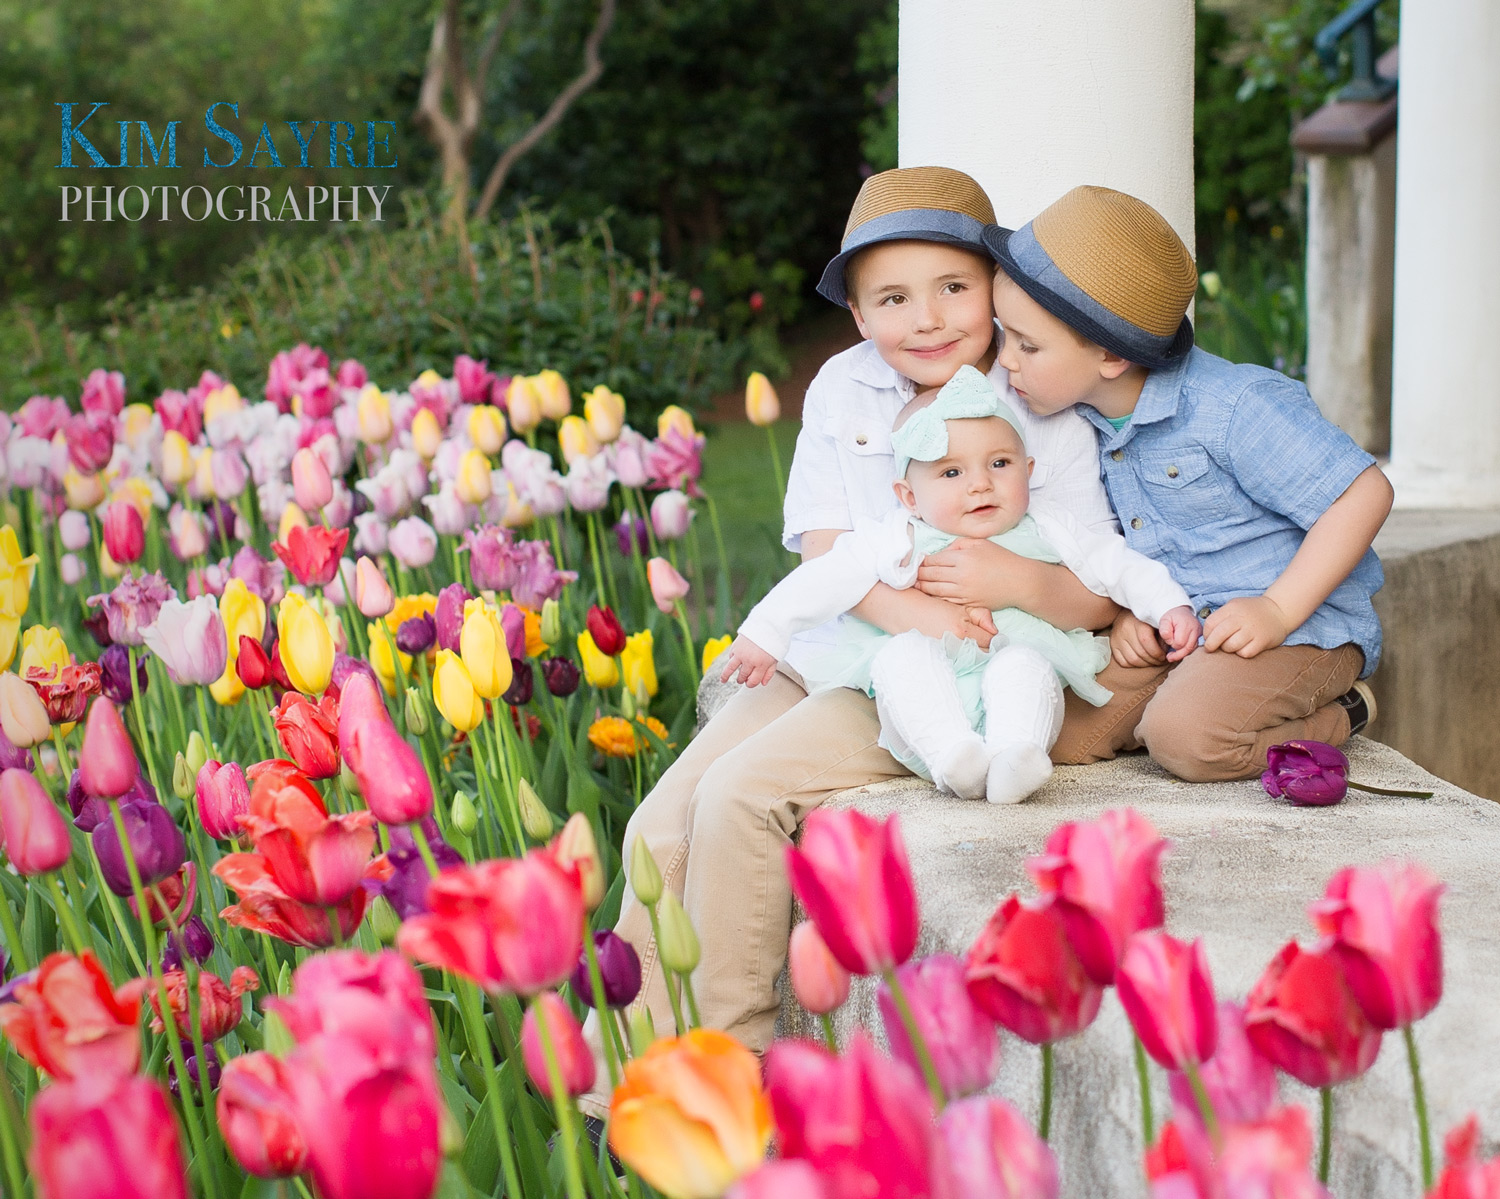 Carson, Gracie and Cade - Portraits in the Spring tulips!